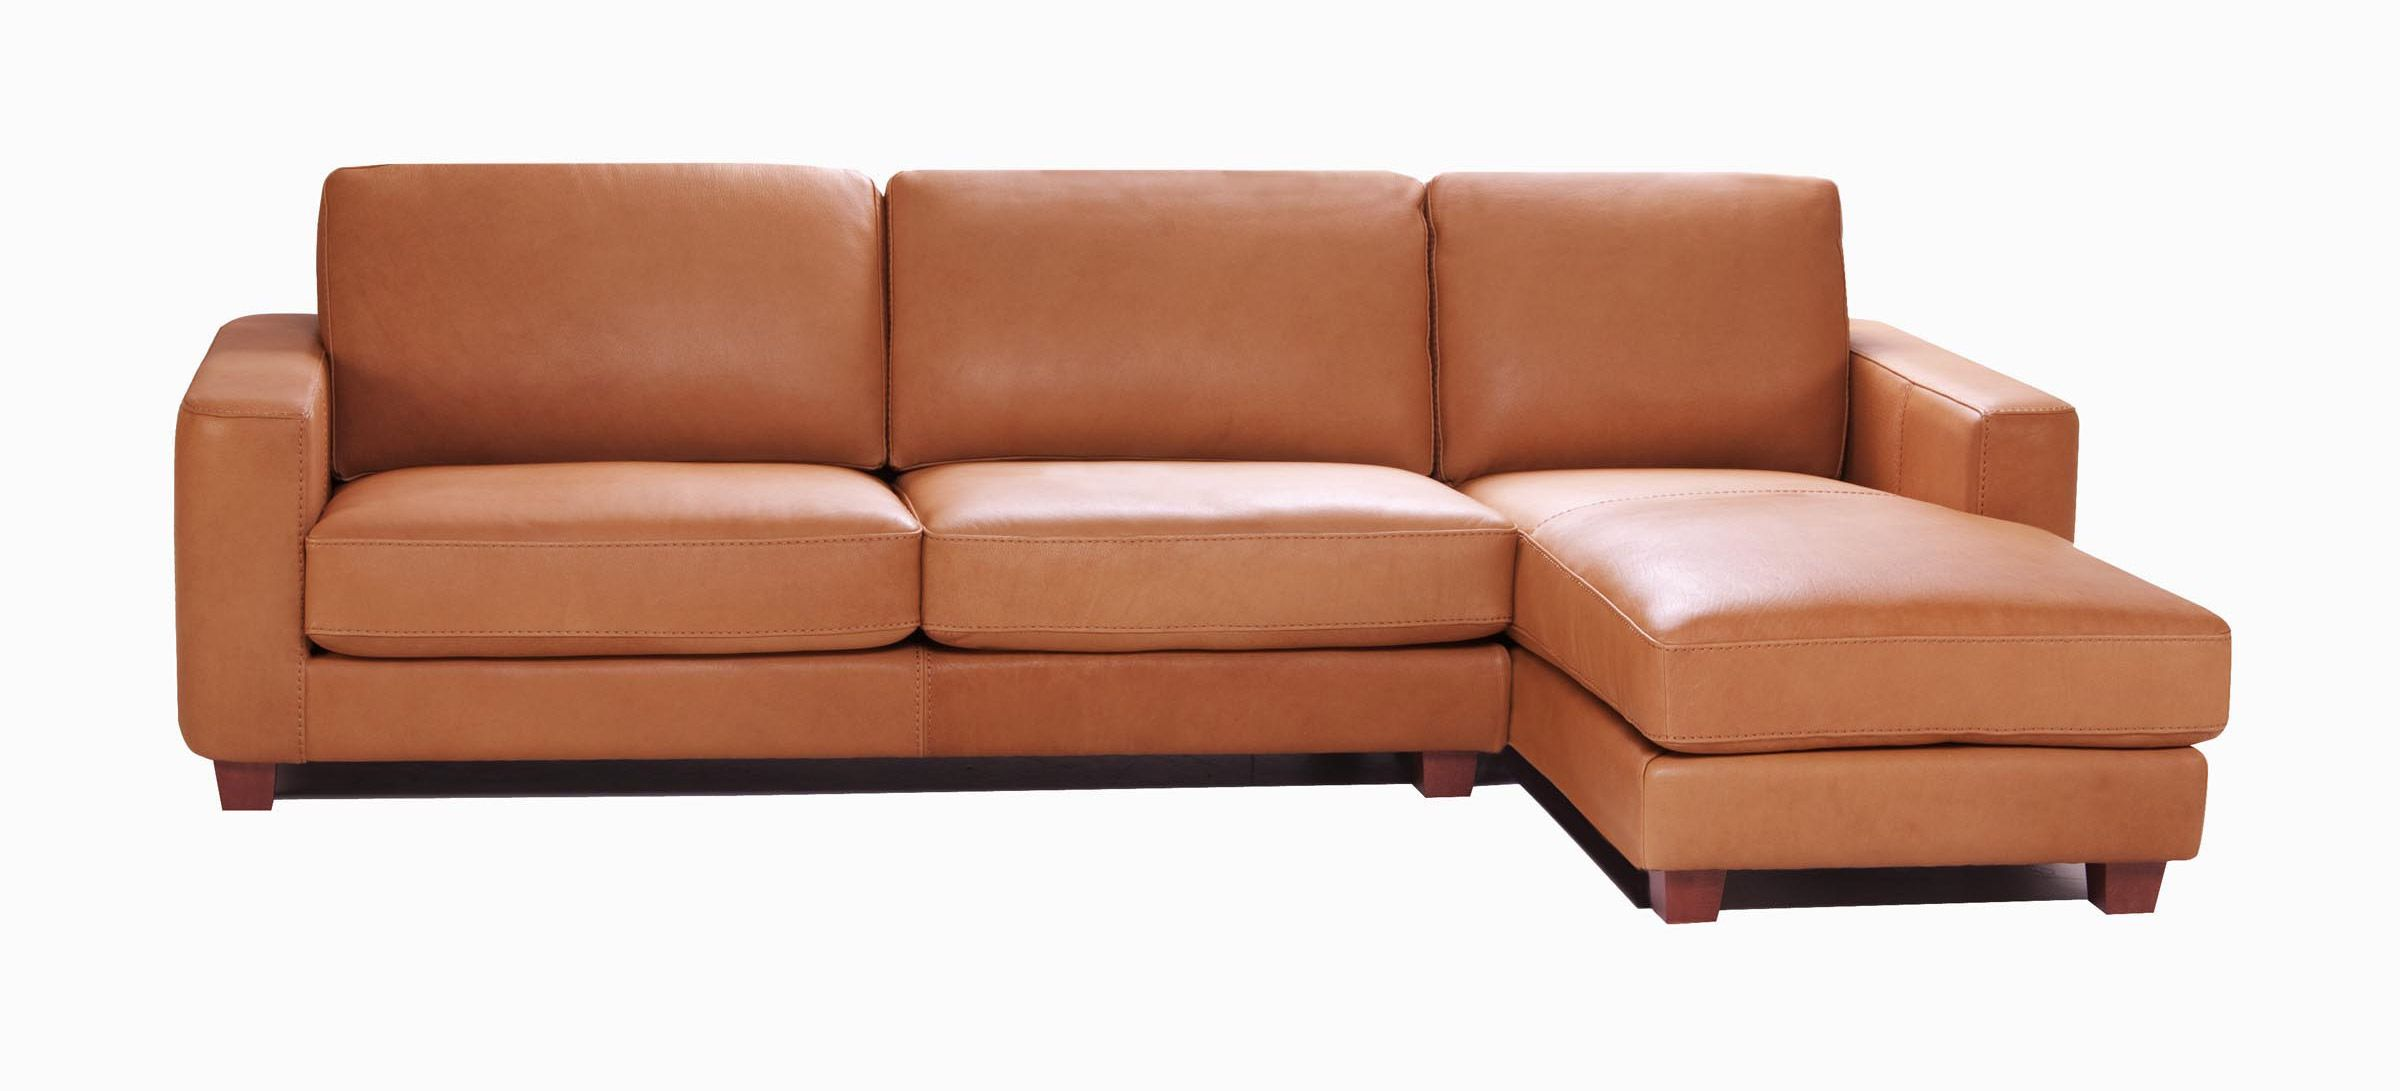 Discover Jaymar S Sofas Loveseats Recliners Chairs Accent Chairs Sectionals Hometheatre Chairs Ottomans And Sofa Beds Upholstered Beds Sofa Sectional